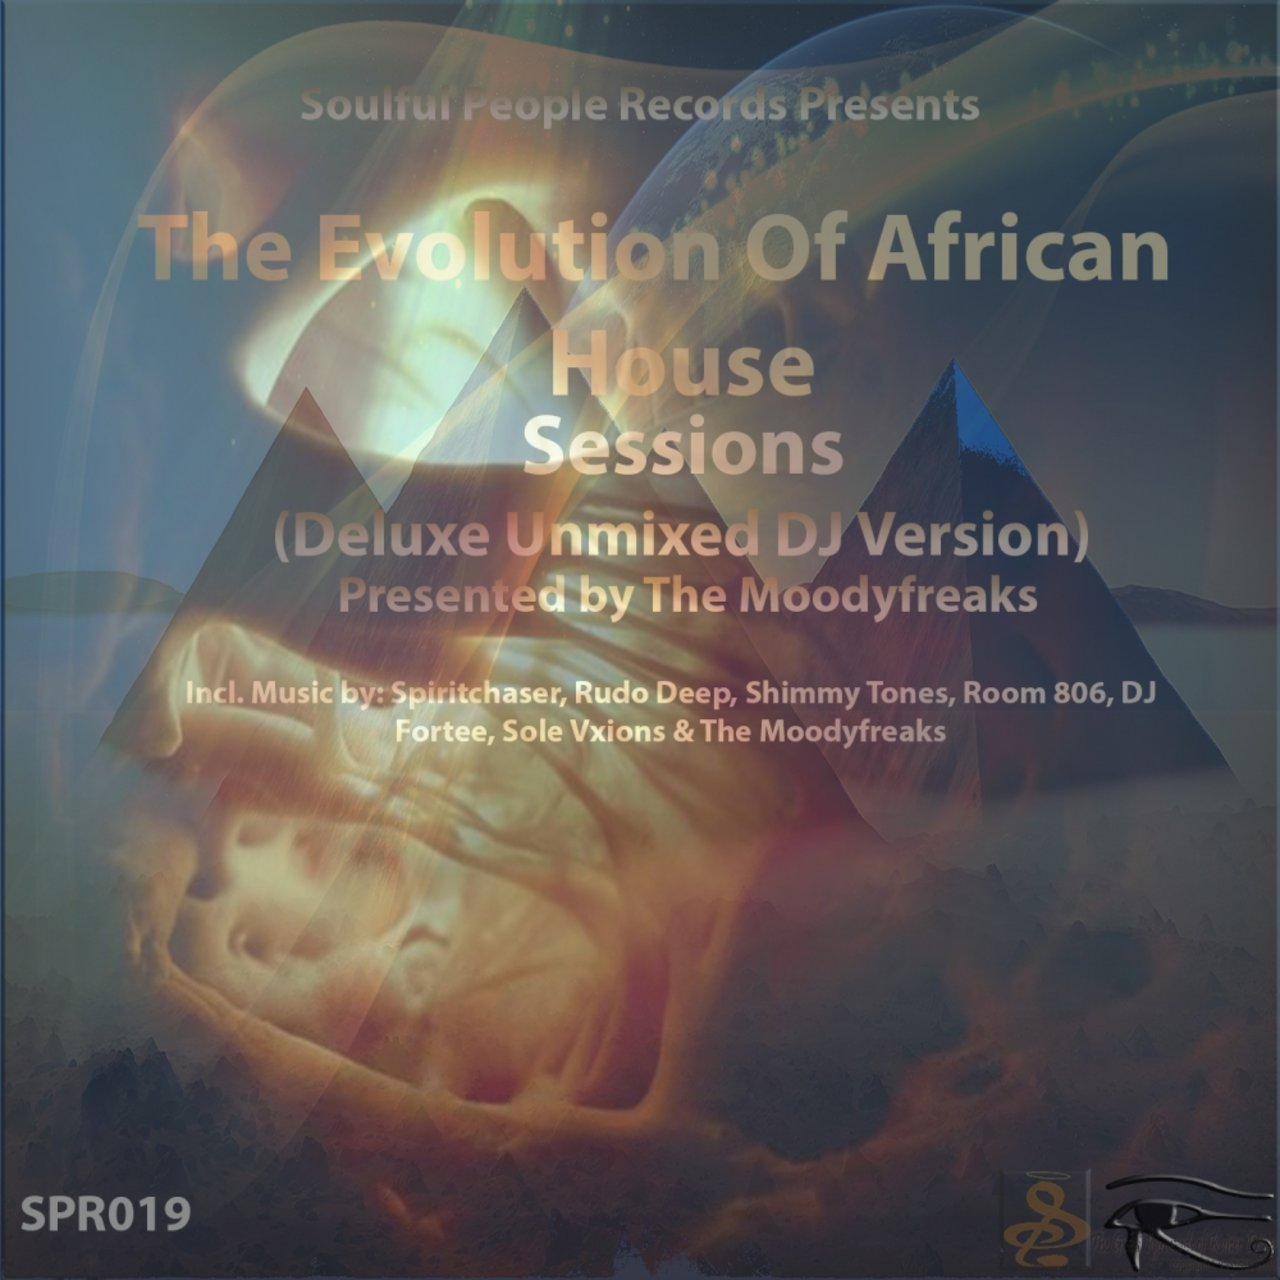 The Evolution Of African House (Deluxe Unmixed DJ Version)